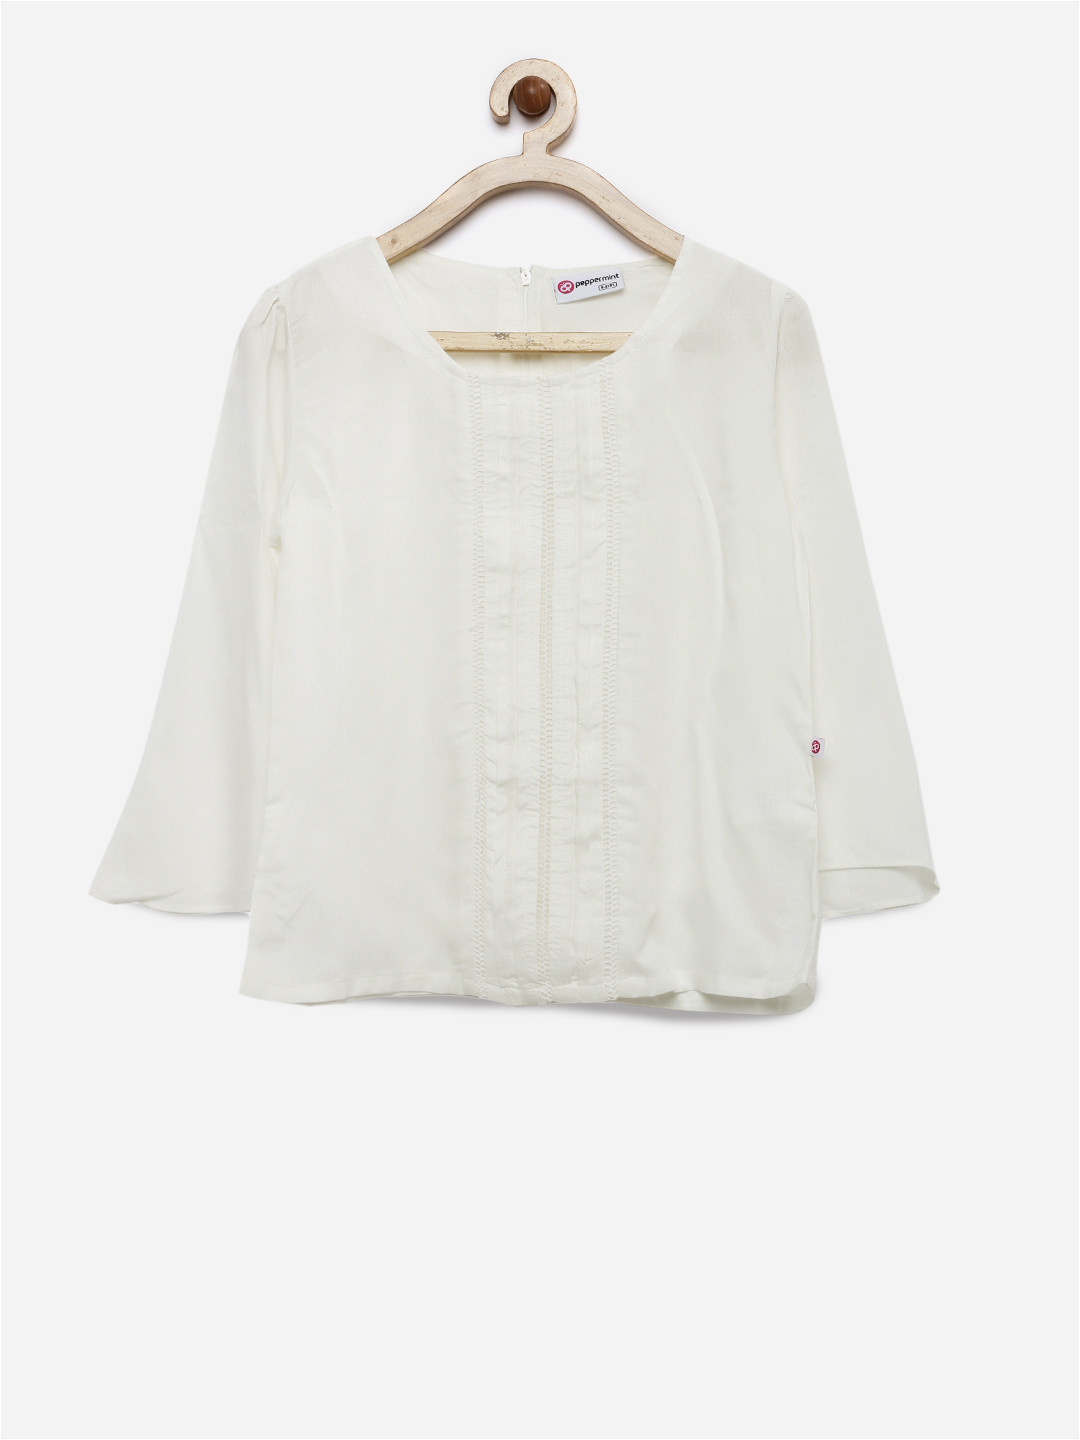 11503058116043 peppermint girls white solid top 2871503058115951 1 jpg